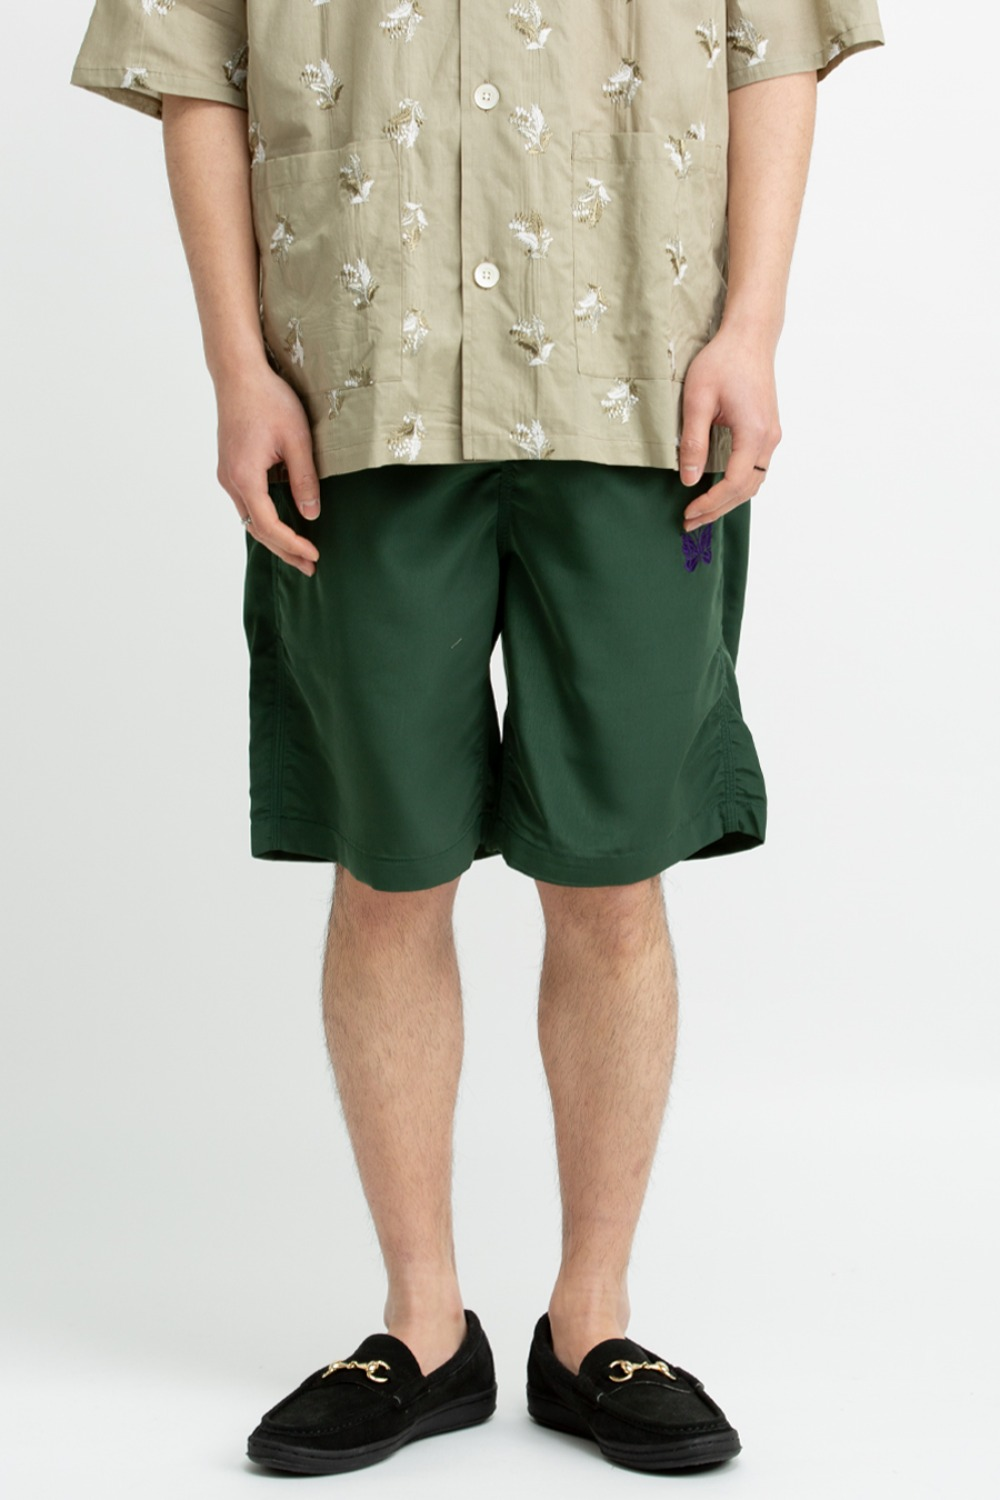 NEEDLES BASKETBALL SHORT – POLY CLOTH GREEN